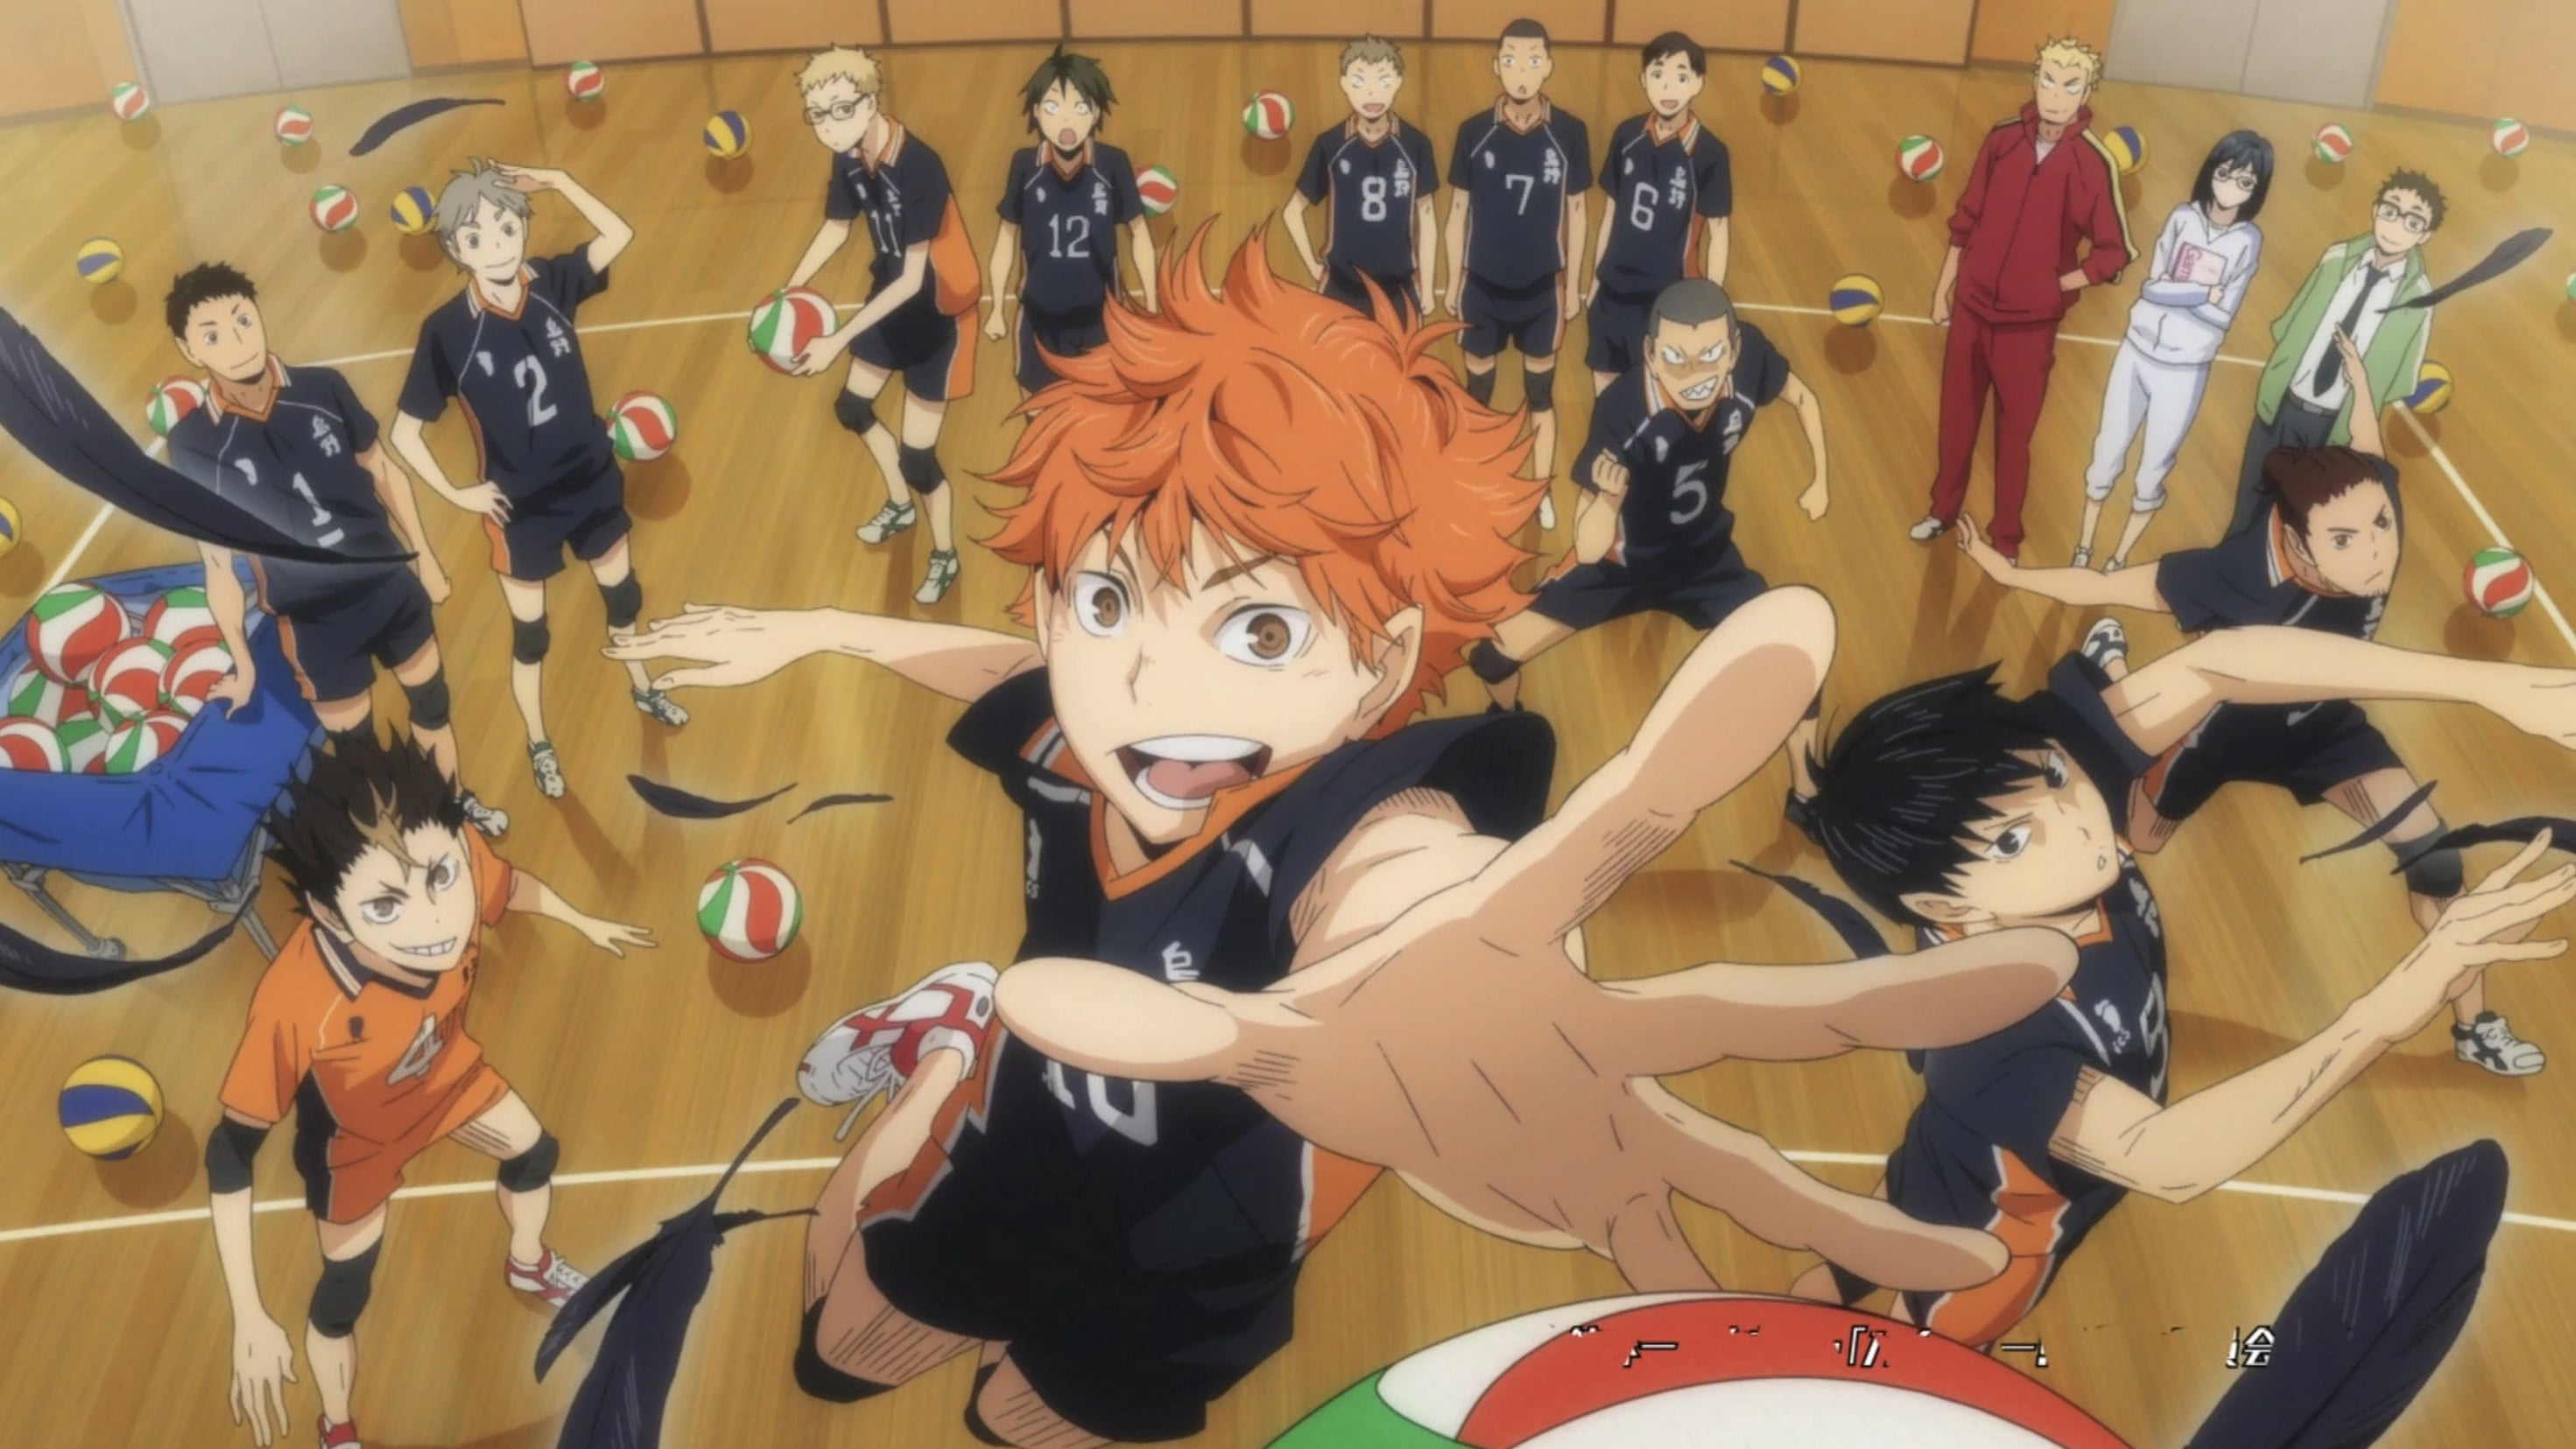 Hinata reaches for the ball as he is surrounded by the Karasuno High School boys' volleyball team